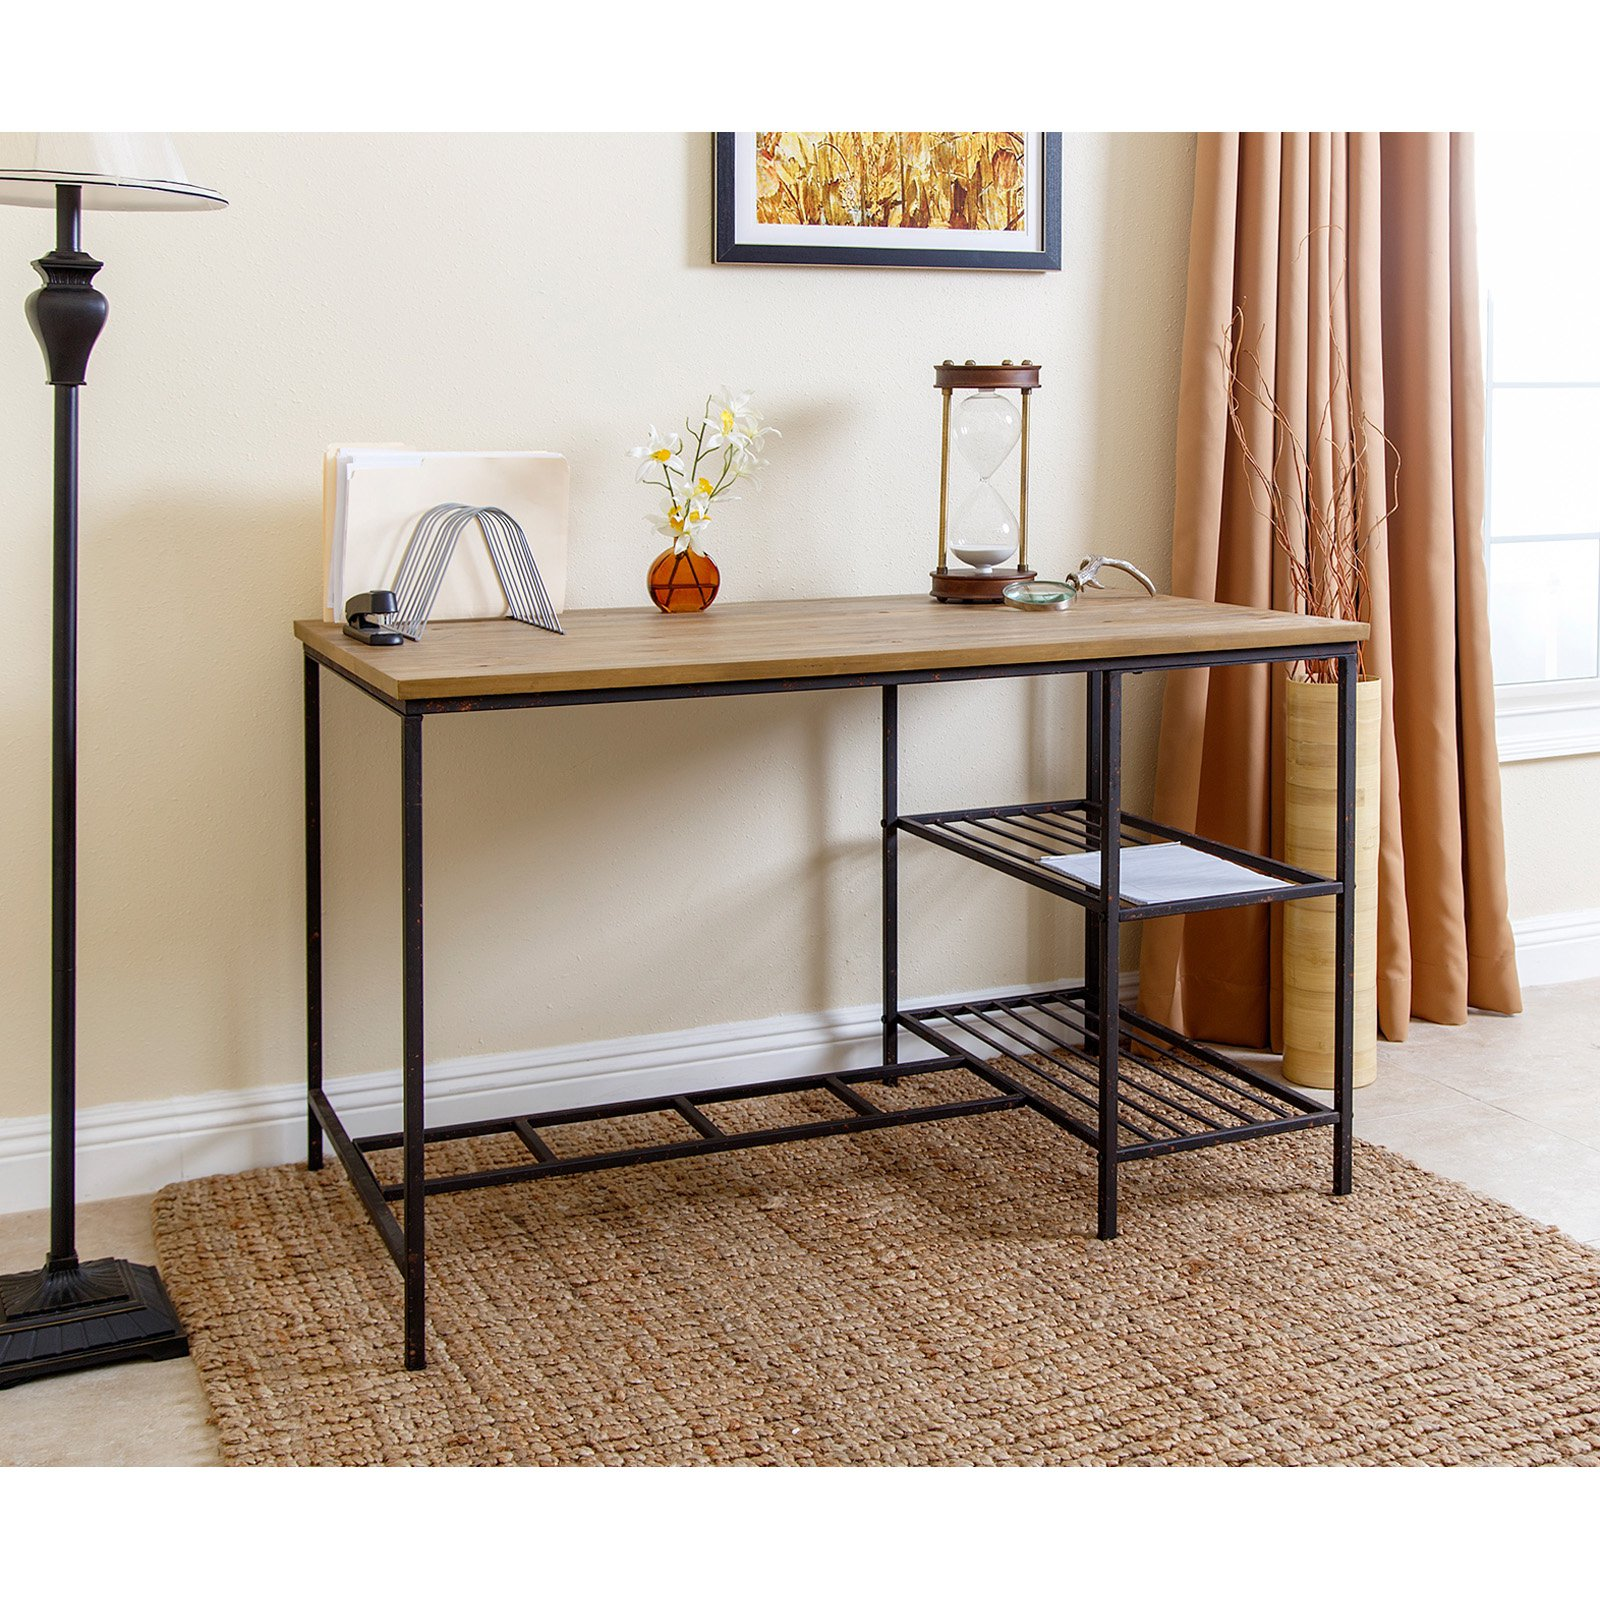 Abbyson Living Abbyson Hillman Industrial Office Desk